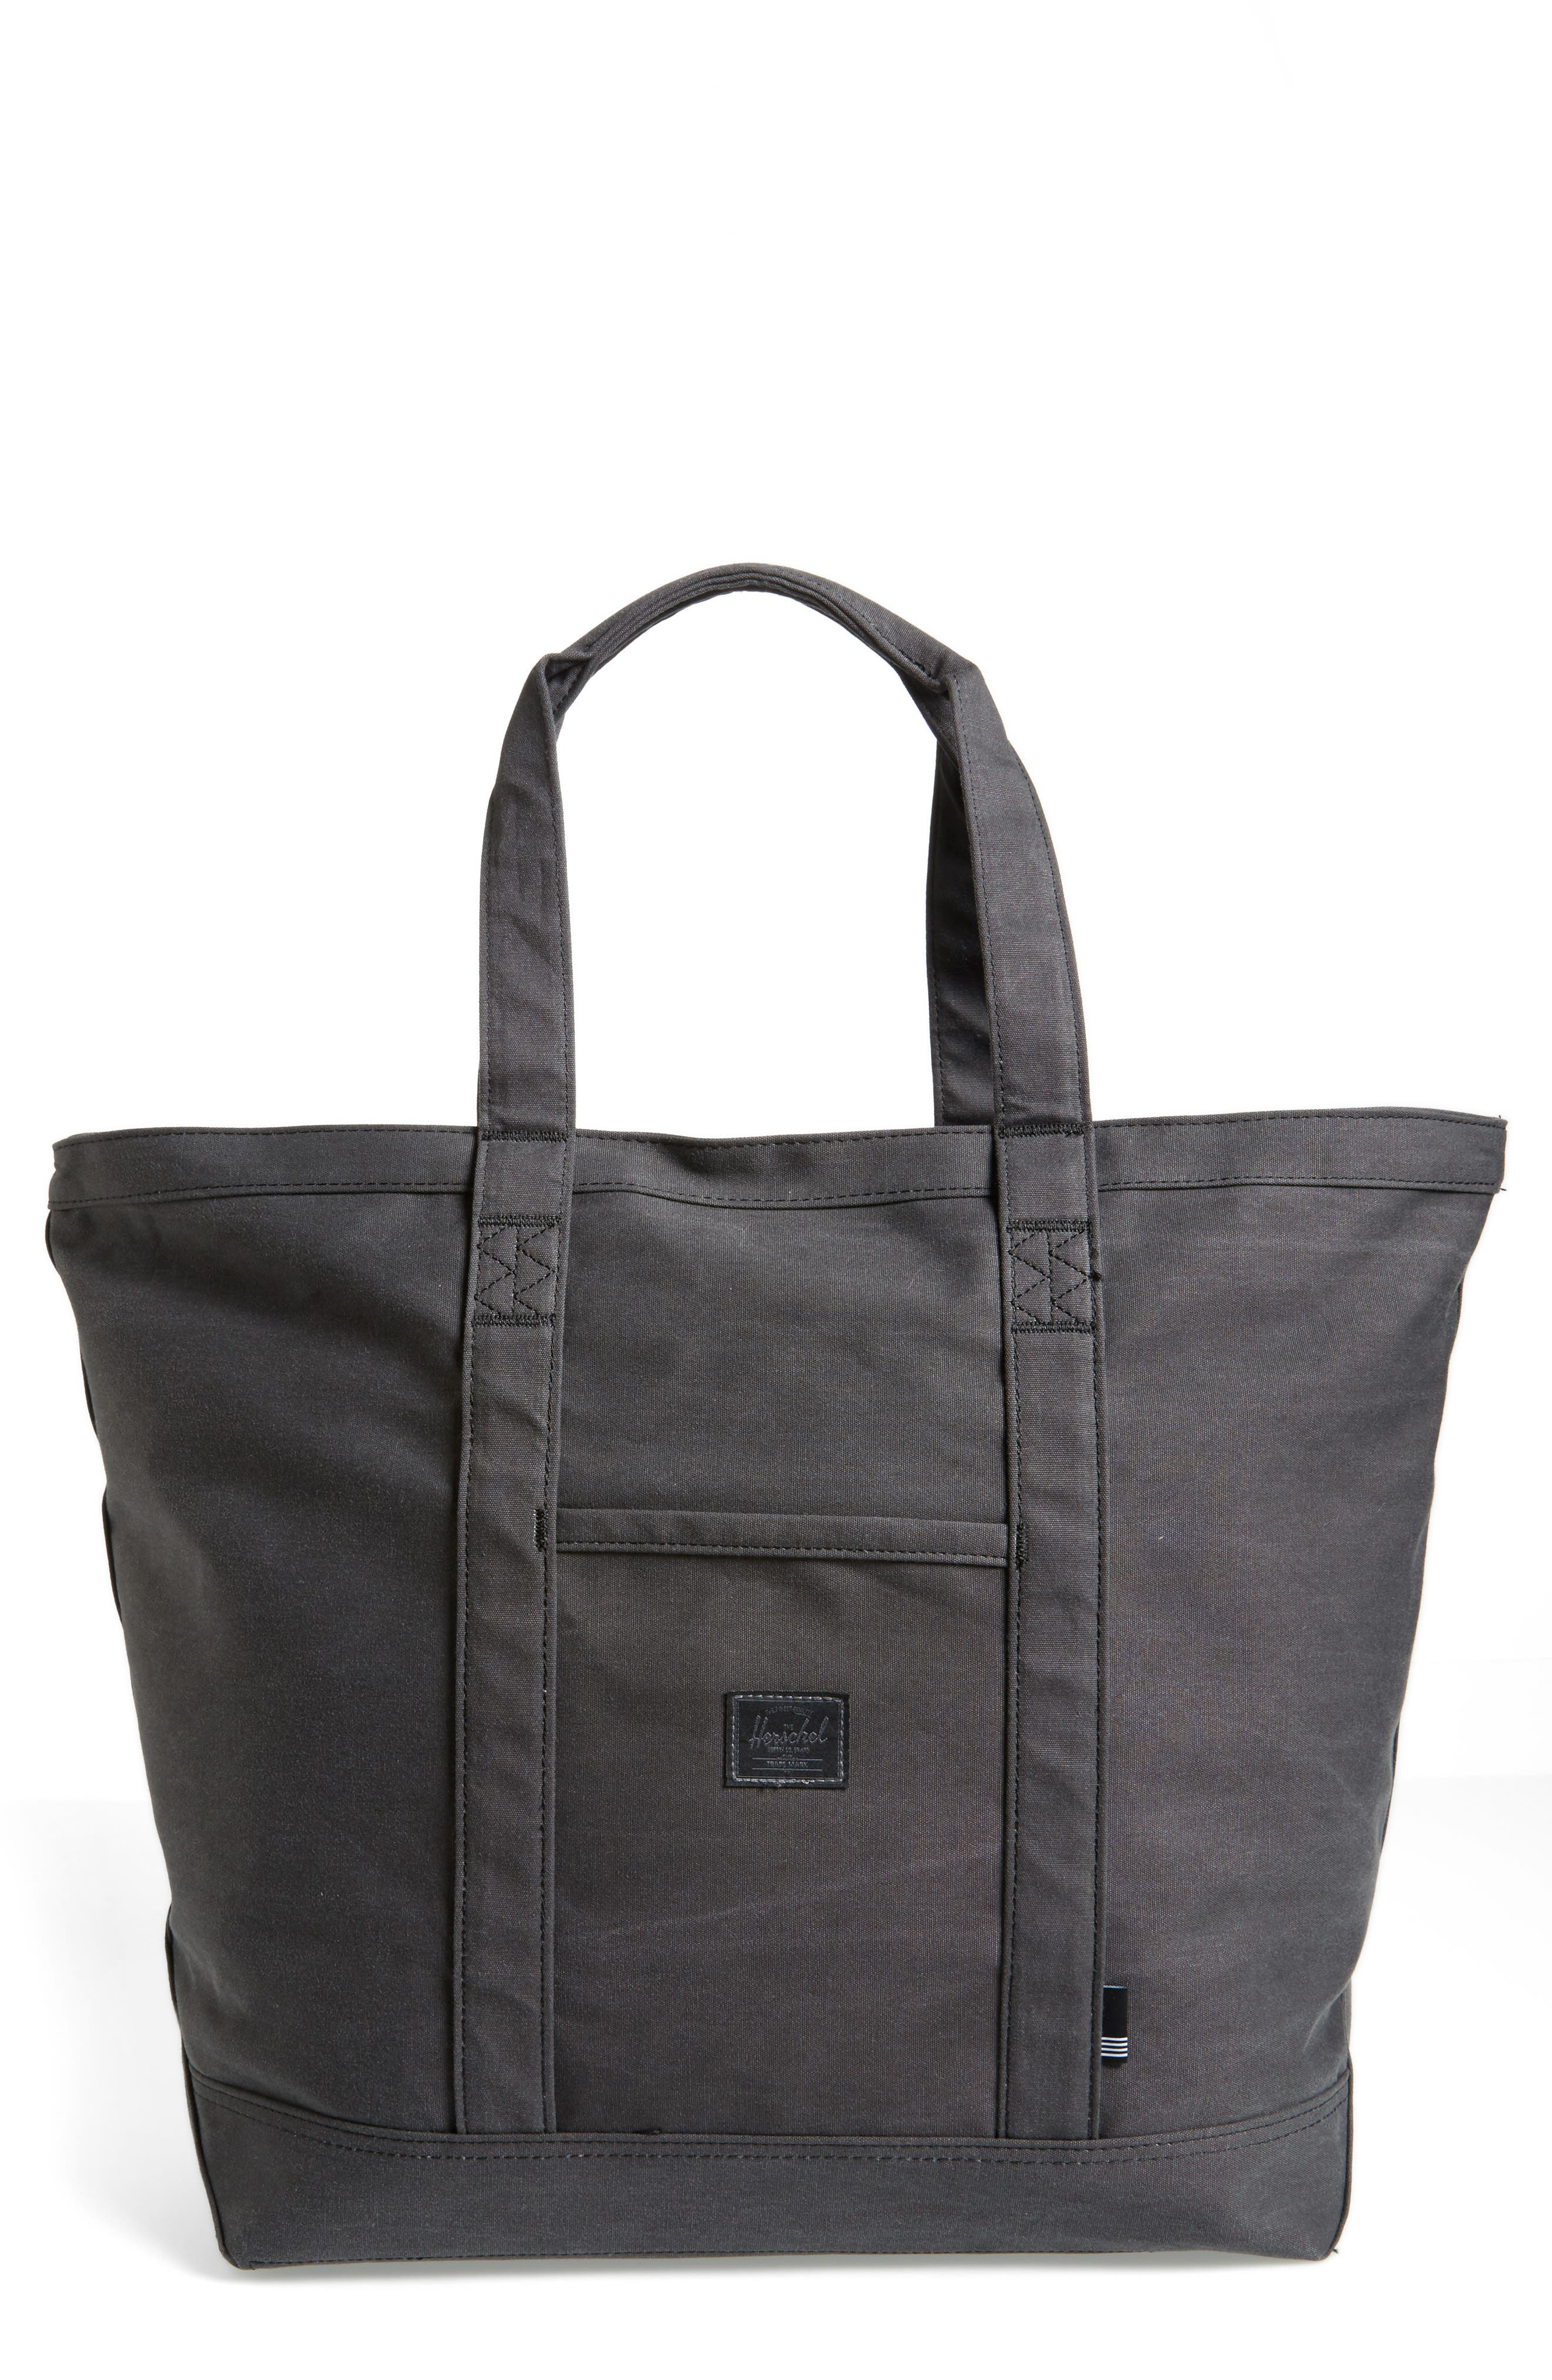 Herschel Supply Co. Bamfield Tote Bag